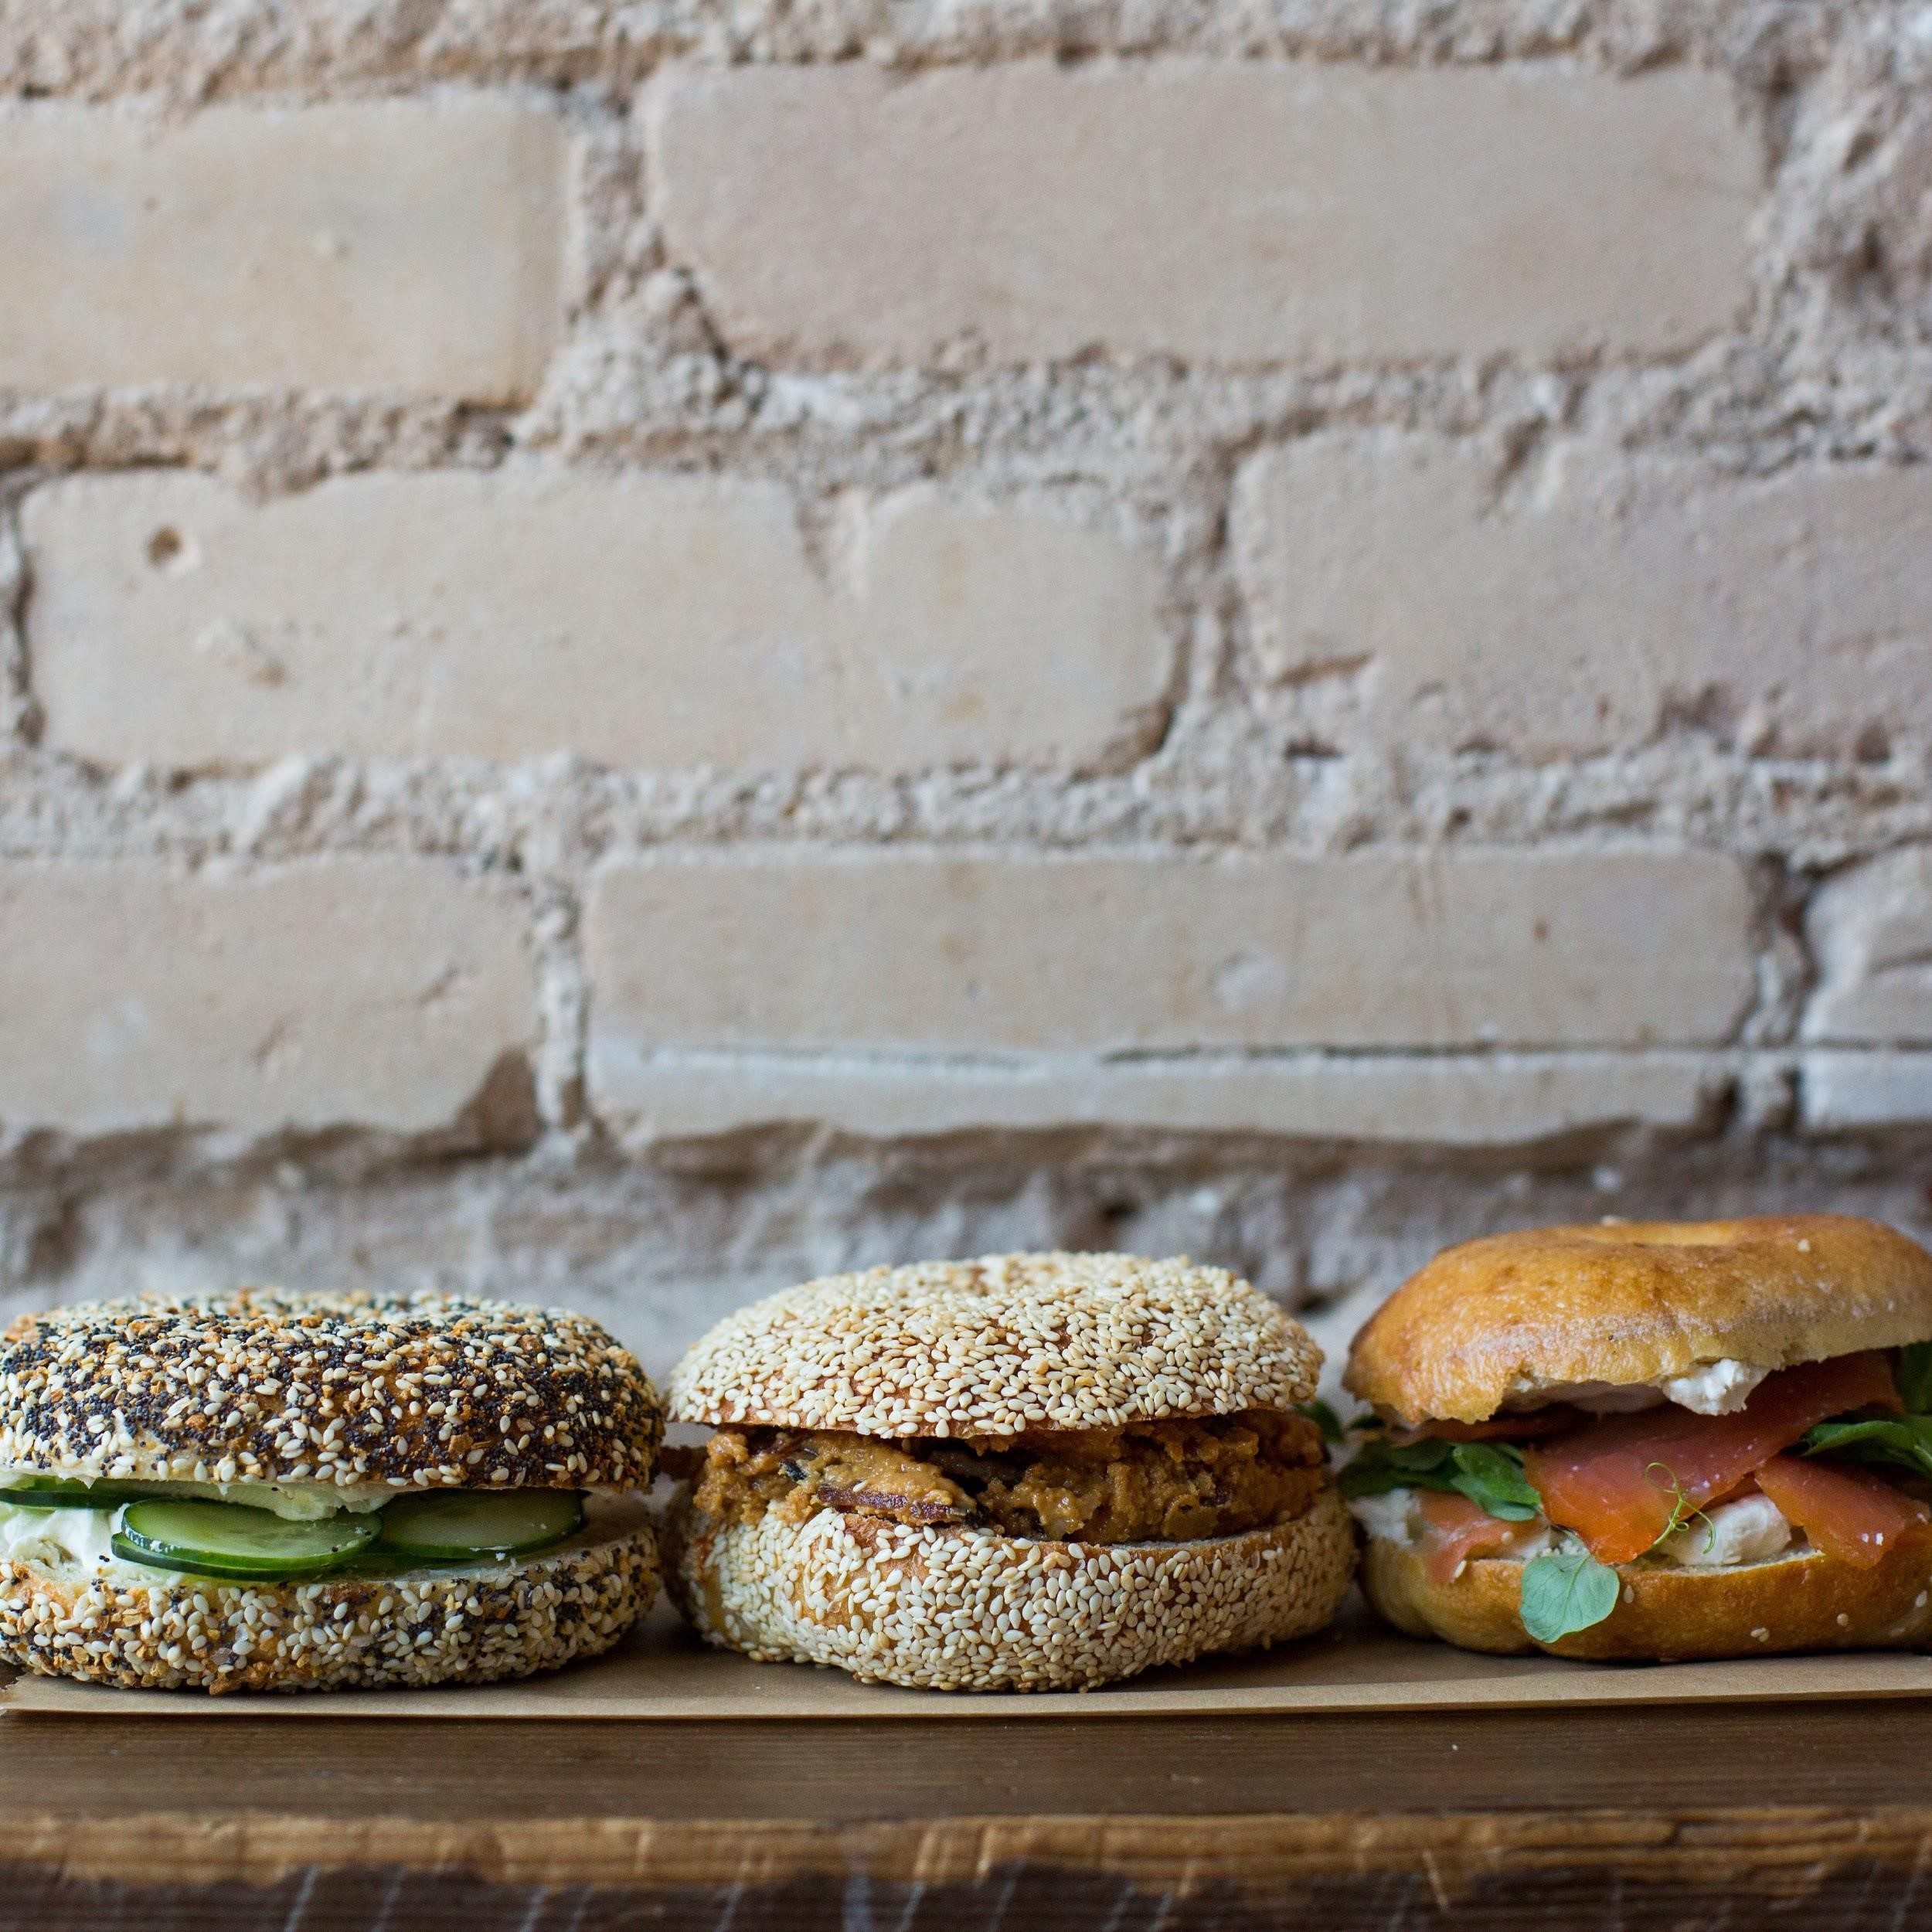 Bagel sandwiches from Call Your Mother deli. (Image: Maya Oren)